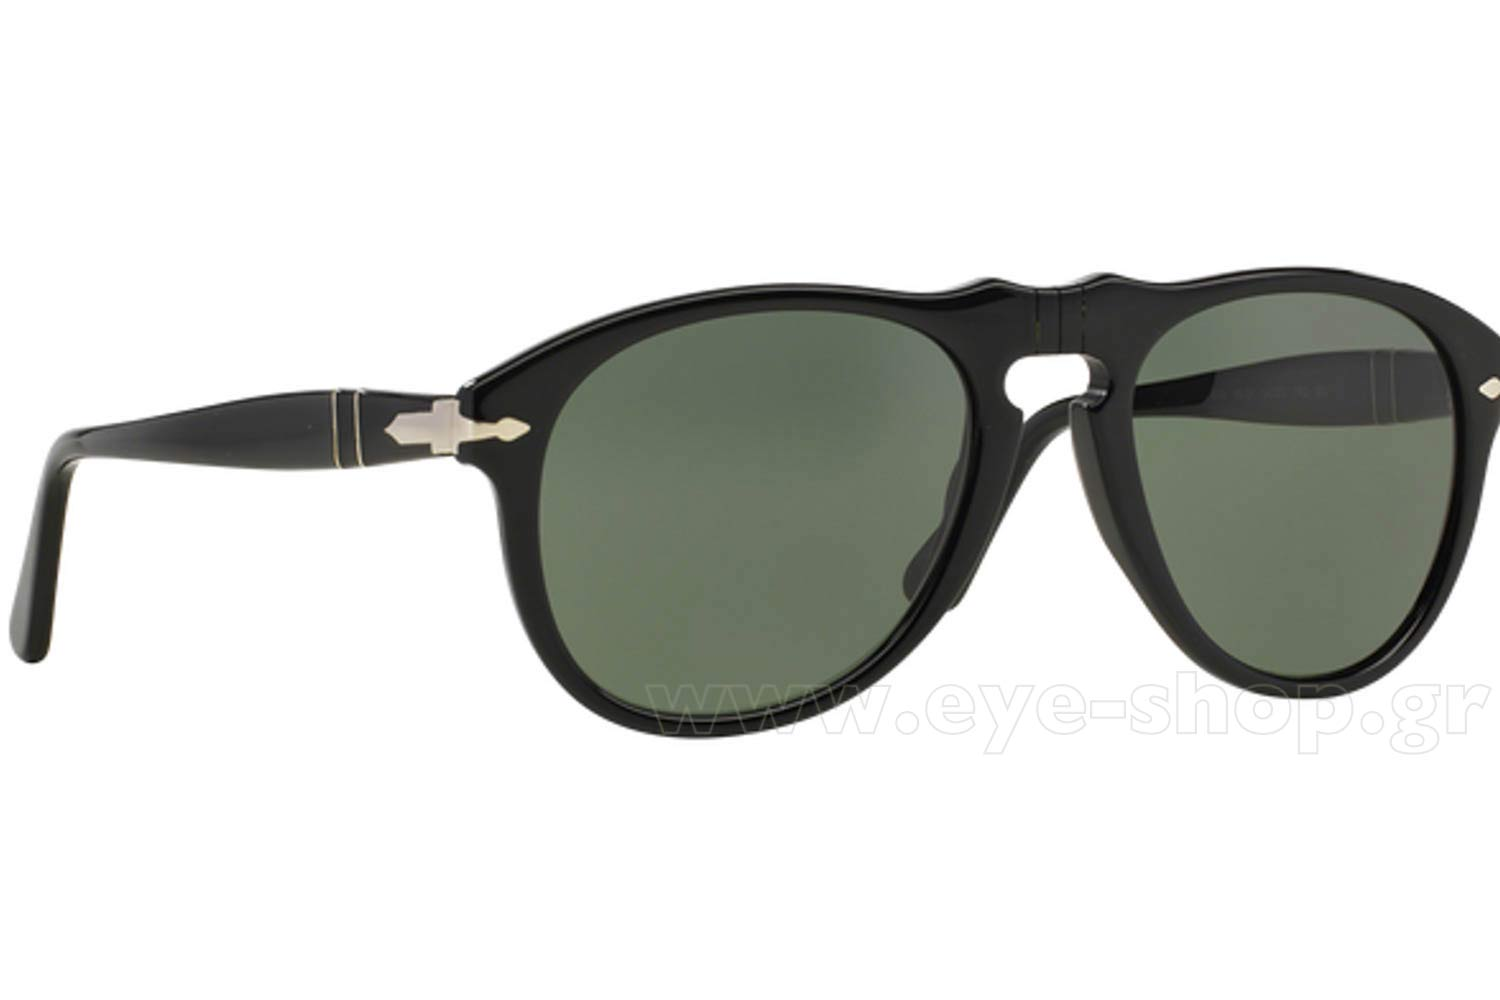 Persol 2622s/198s31 P7003DSdG